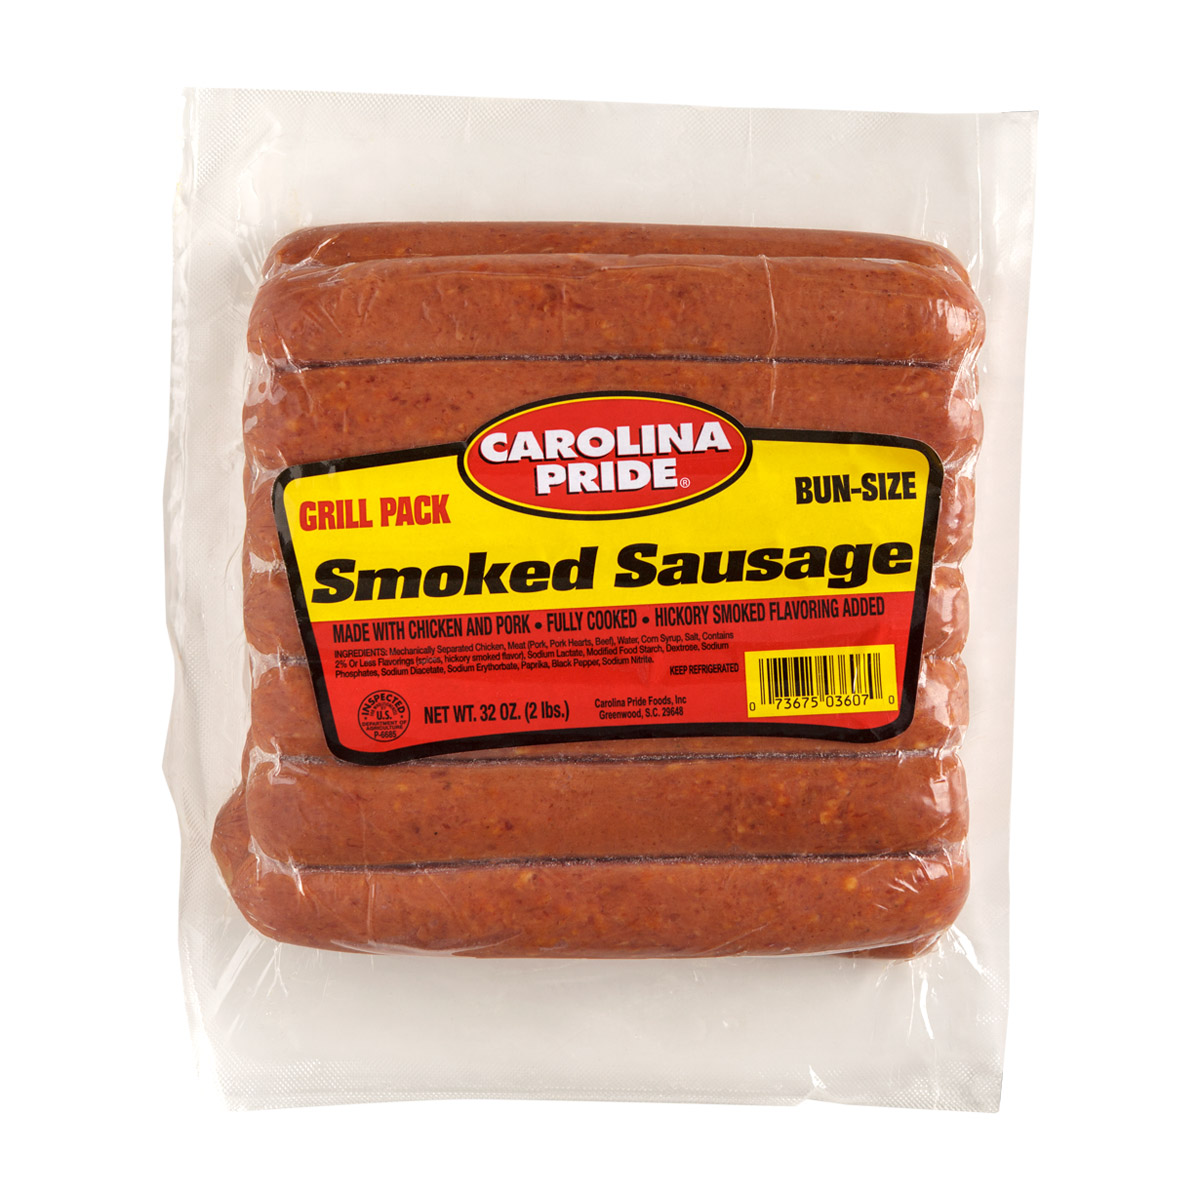 Smoked Sausage Grill Pack – 3607